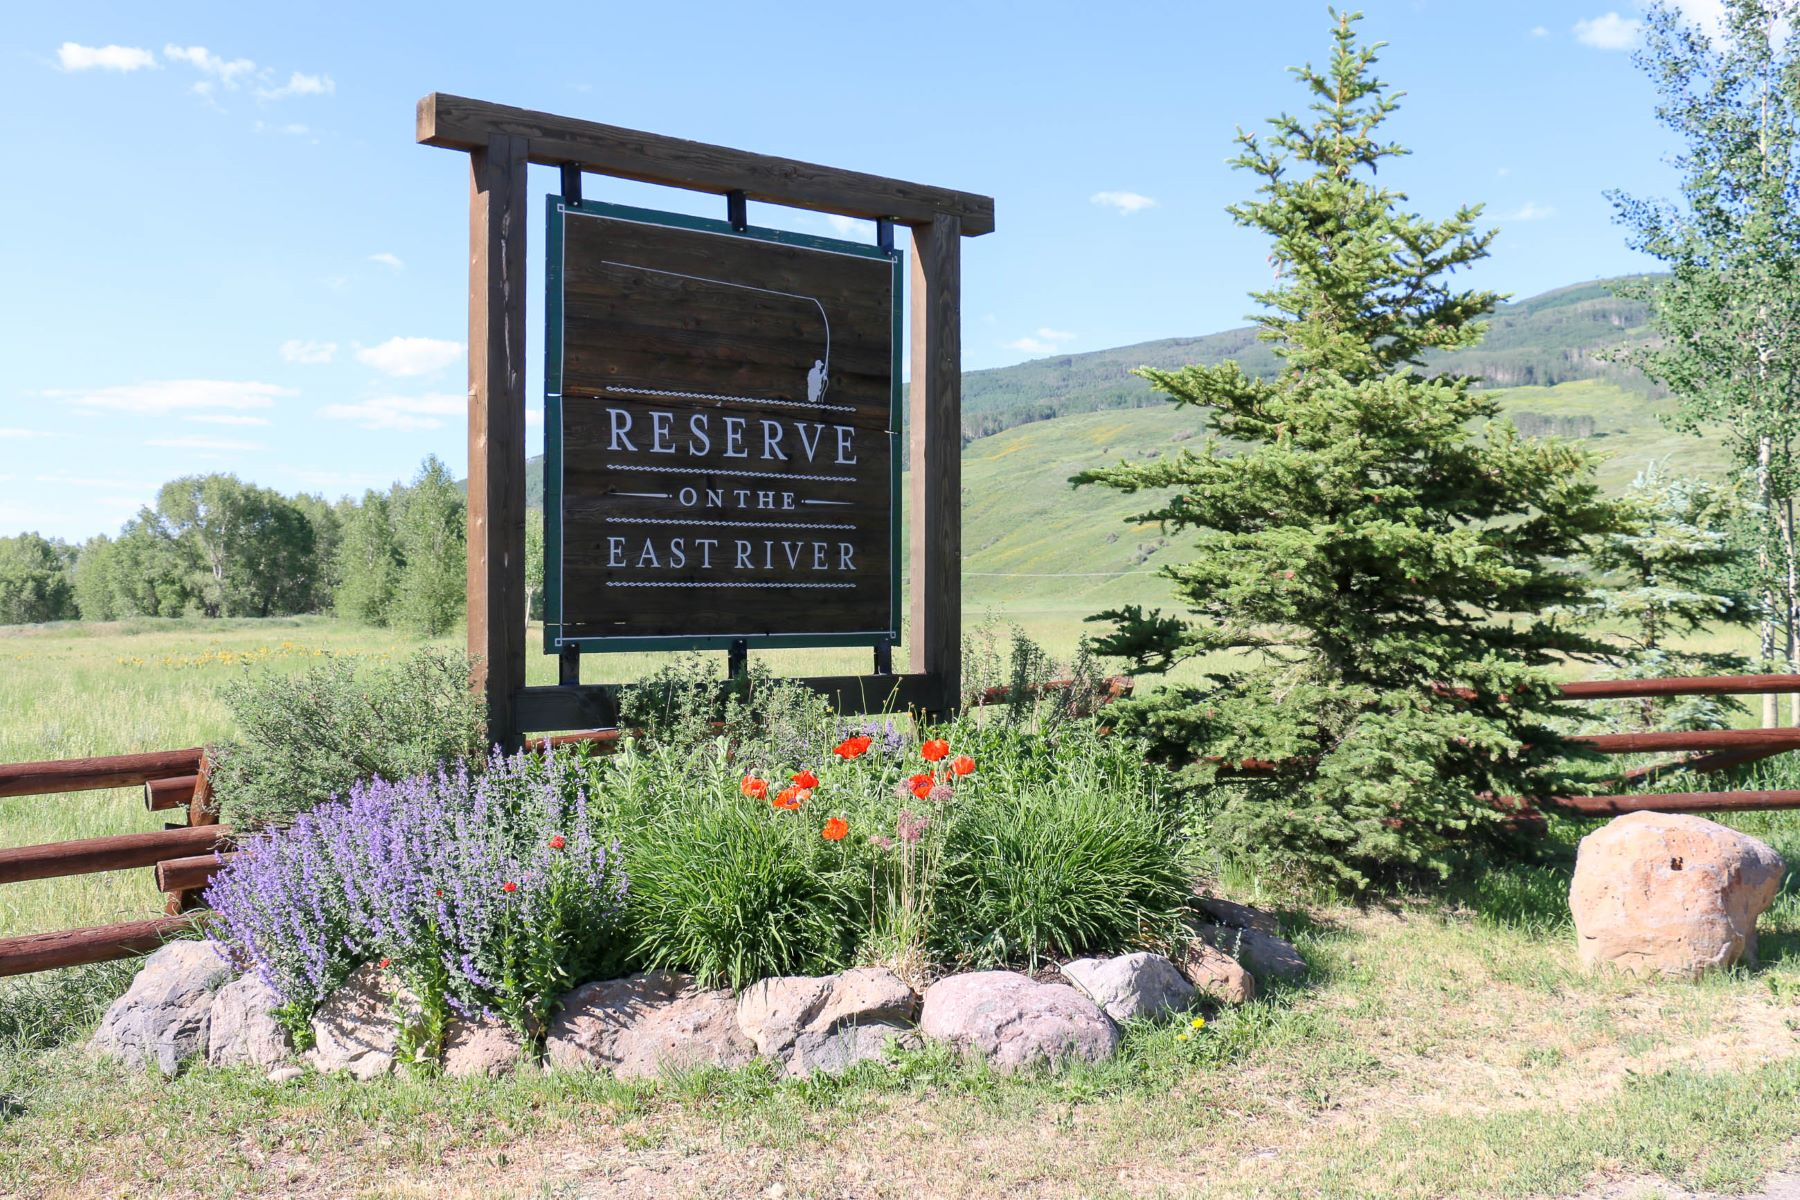 Land for Sale at Reserve on the East River 25 Wapiti Trail, Crested Butte, Colorado, 81224 United States